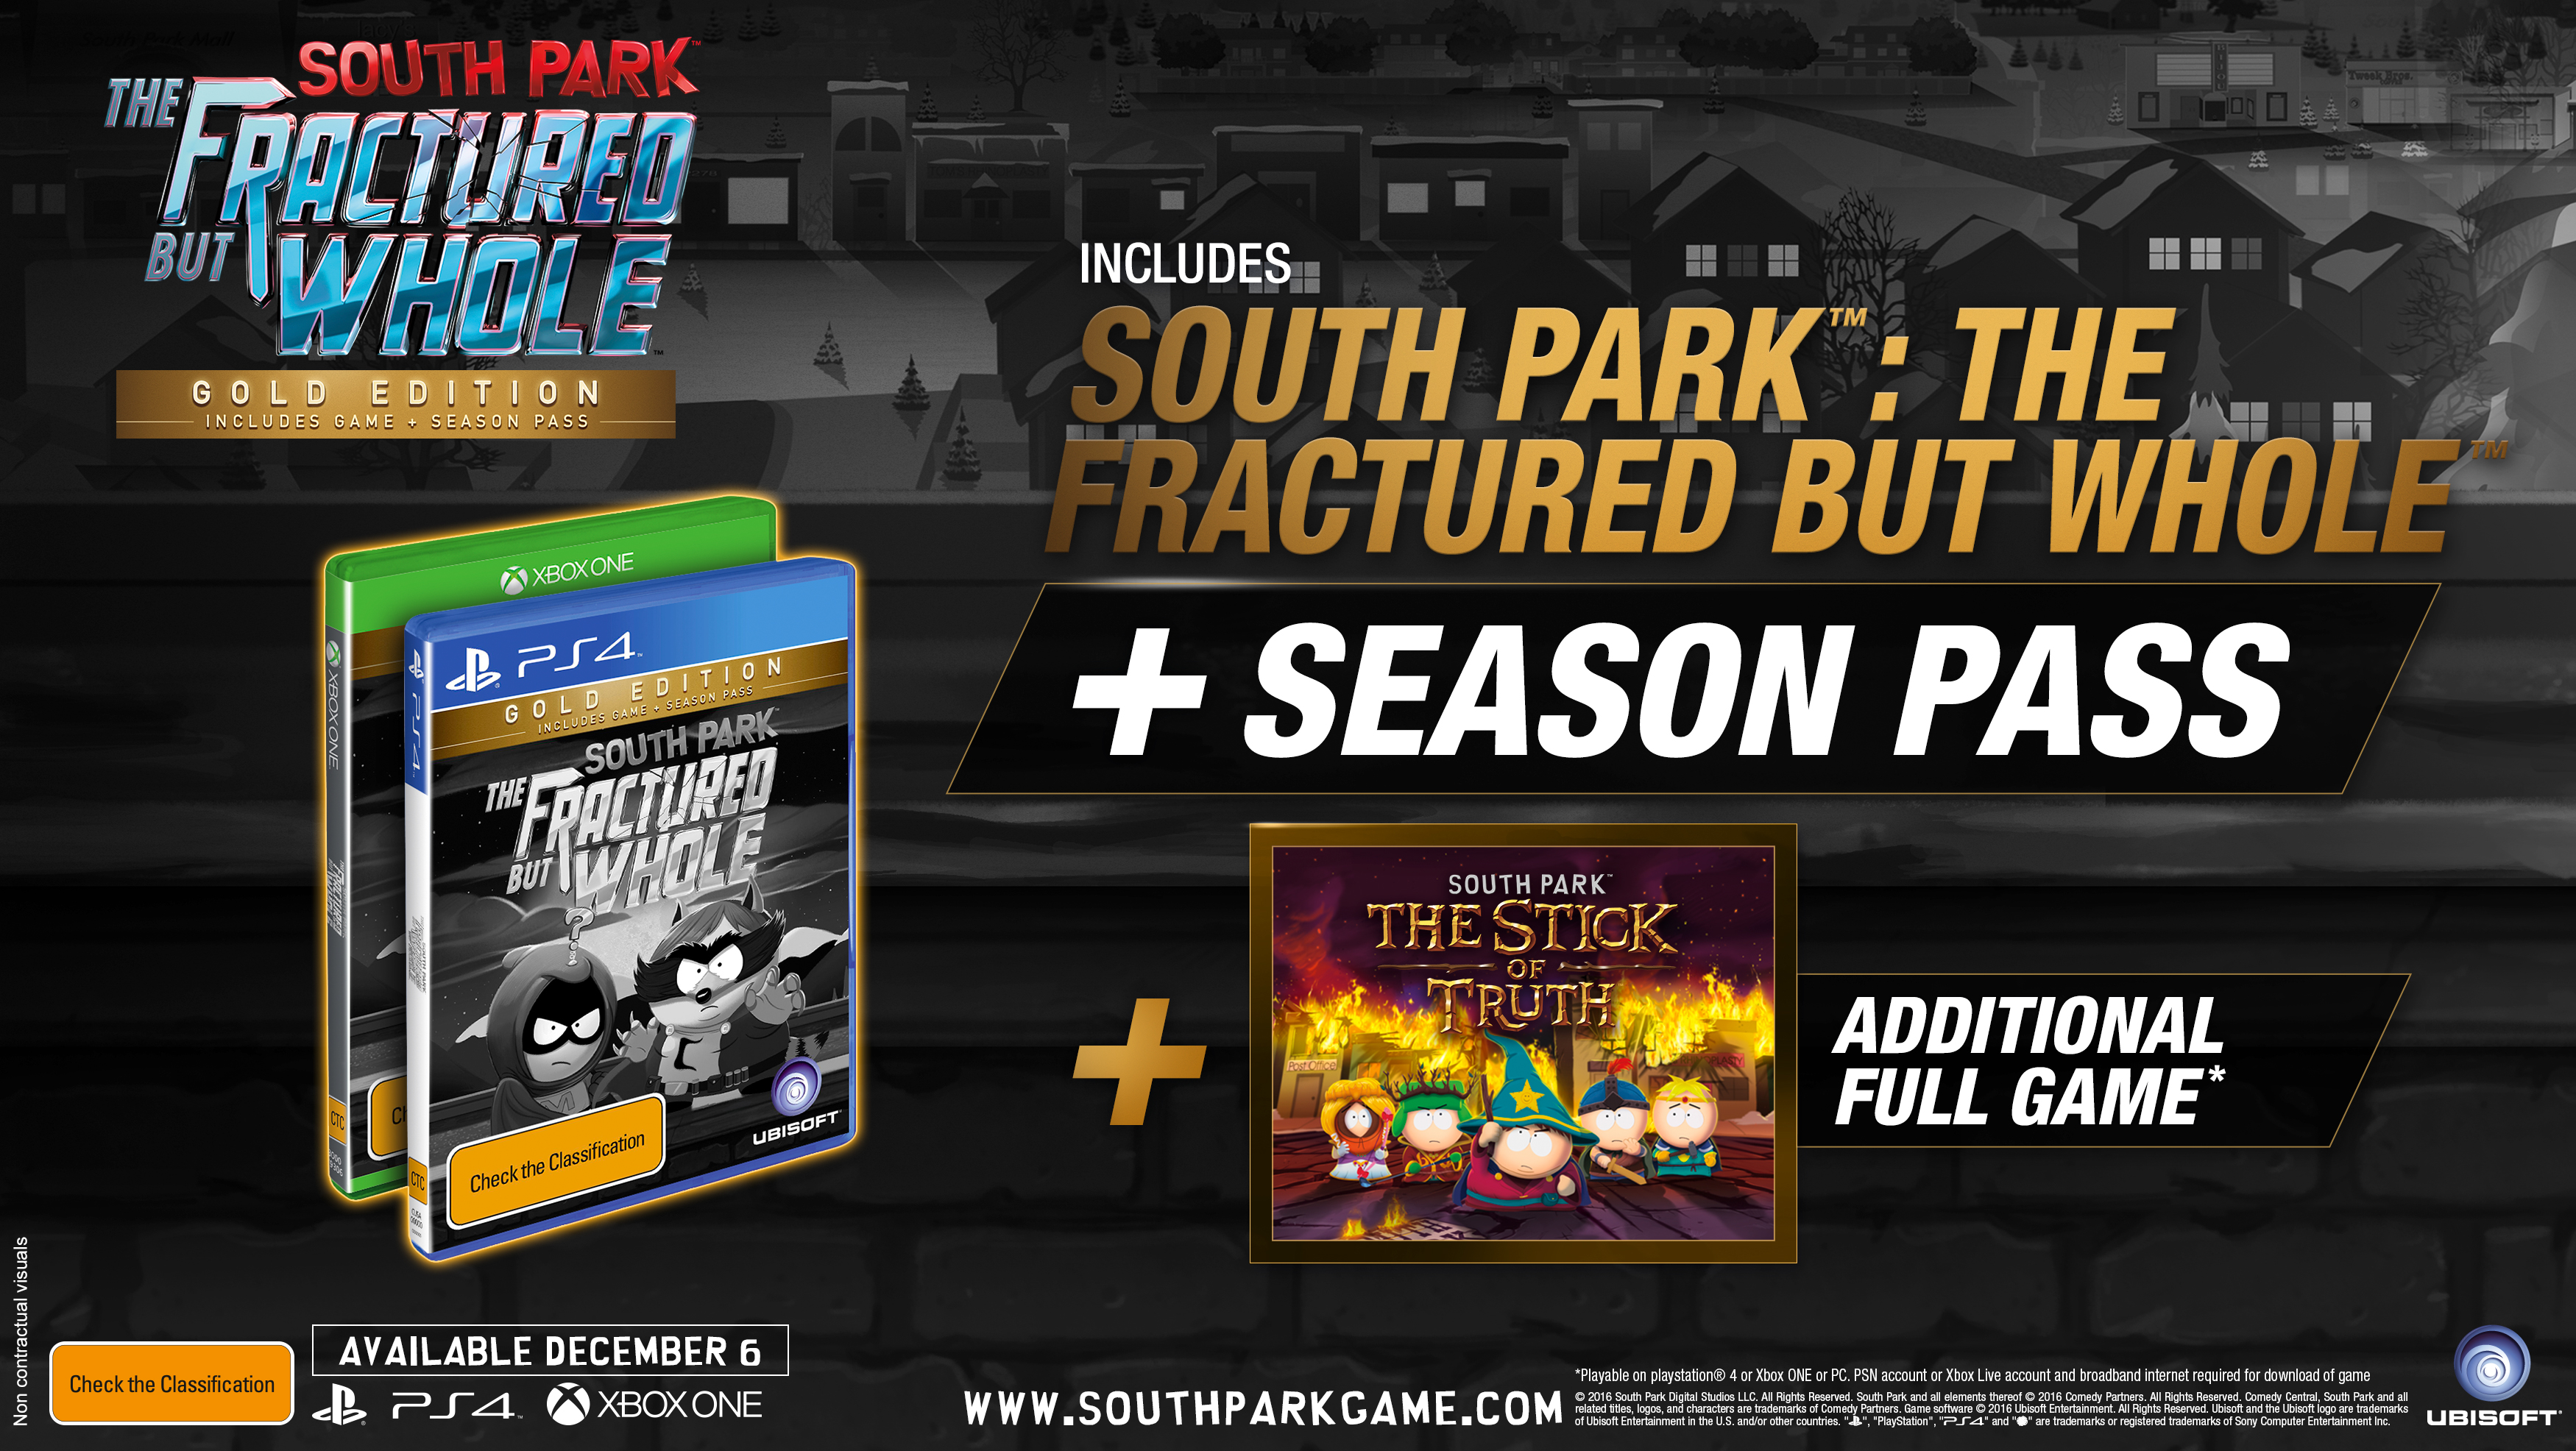 SPFBW mock gold e3 160613 230pm ANZ 1465857025 E3 2016: South Park: The Fractured But Whole Dated